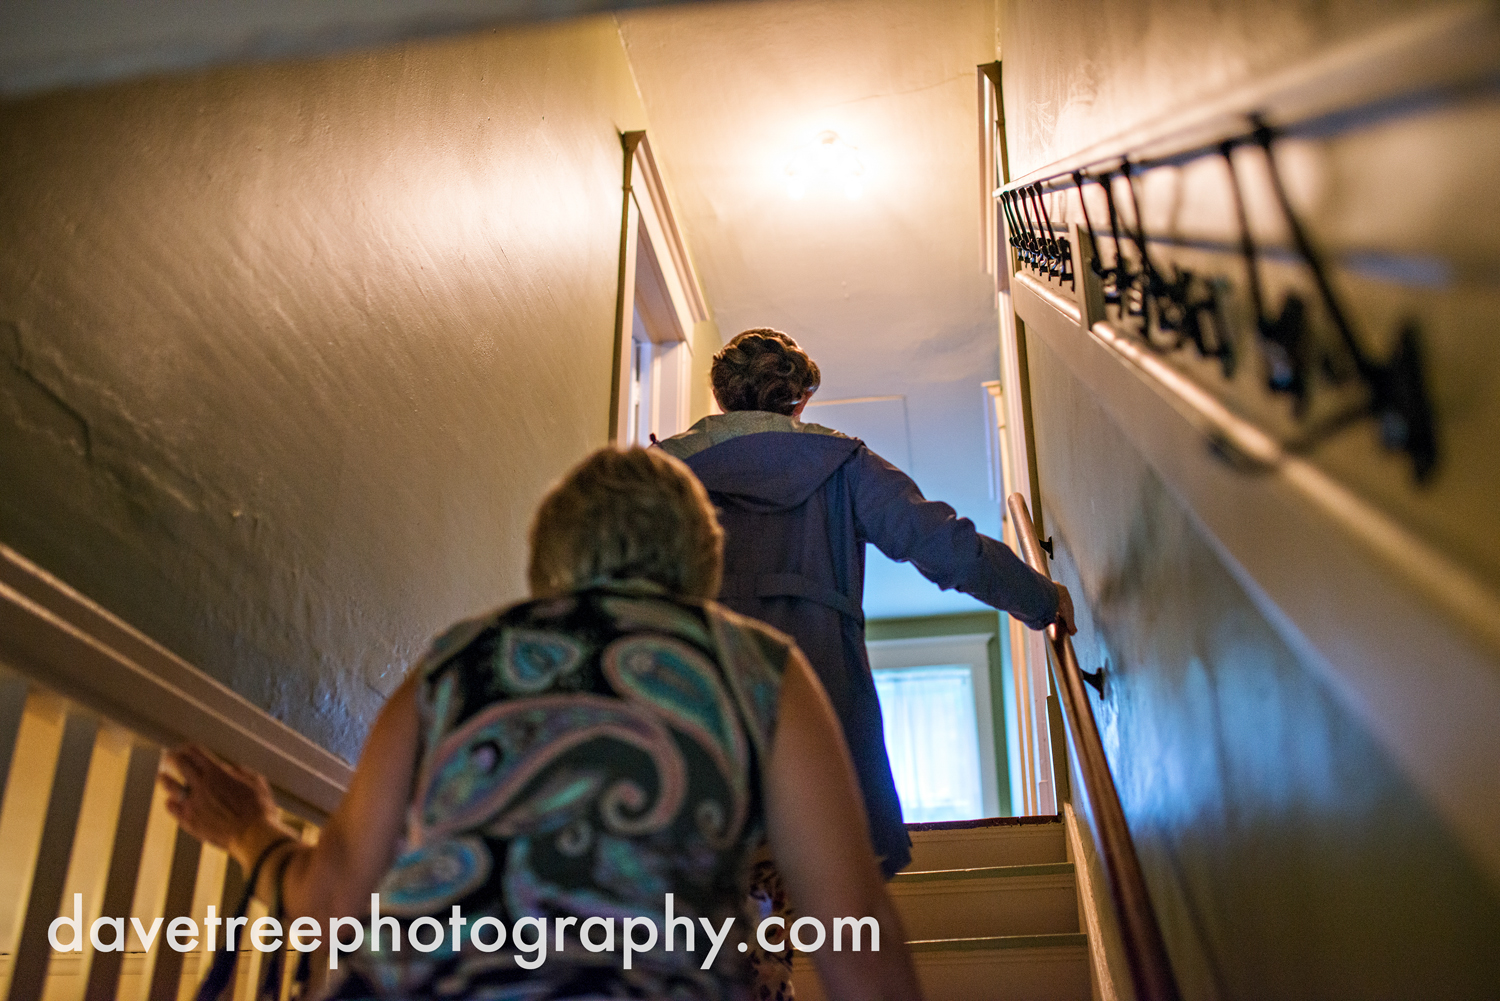 grand_haven_wedding_photographer_weaver_house_wedding_096.jpg